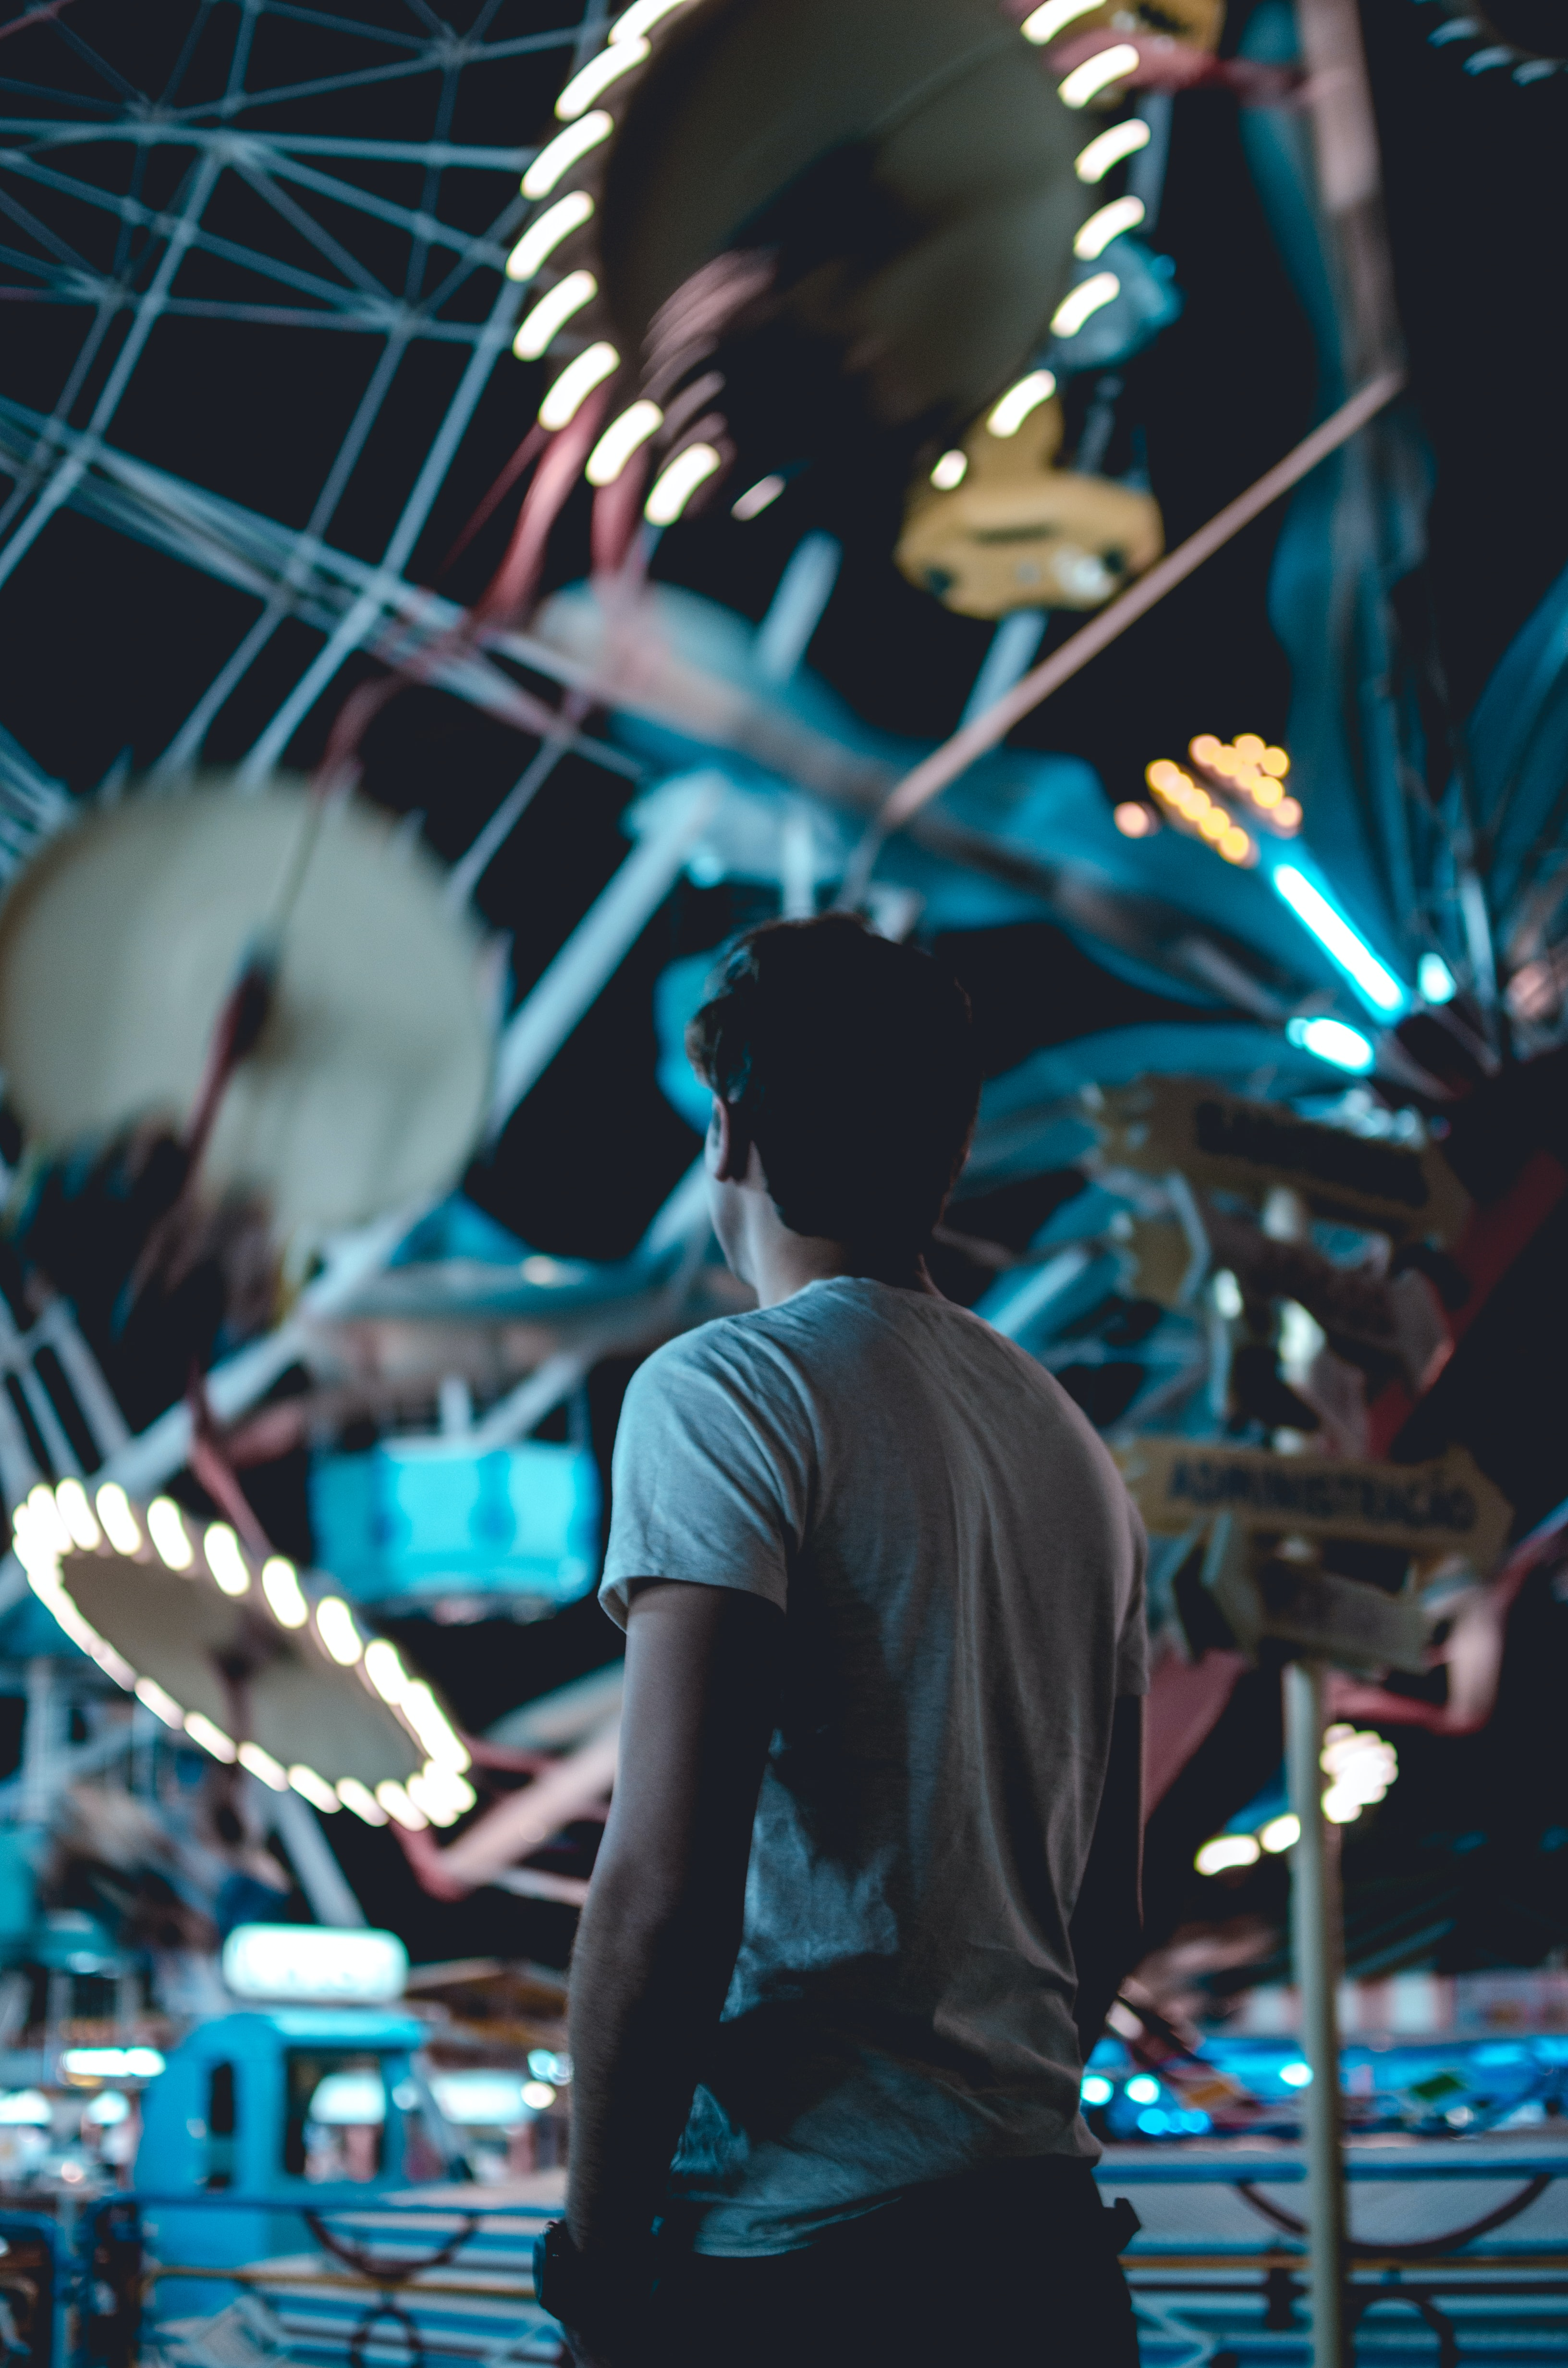 A man stares up at a lit up ride at the fairground in Belo Horizonte, Brazil